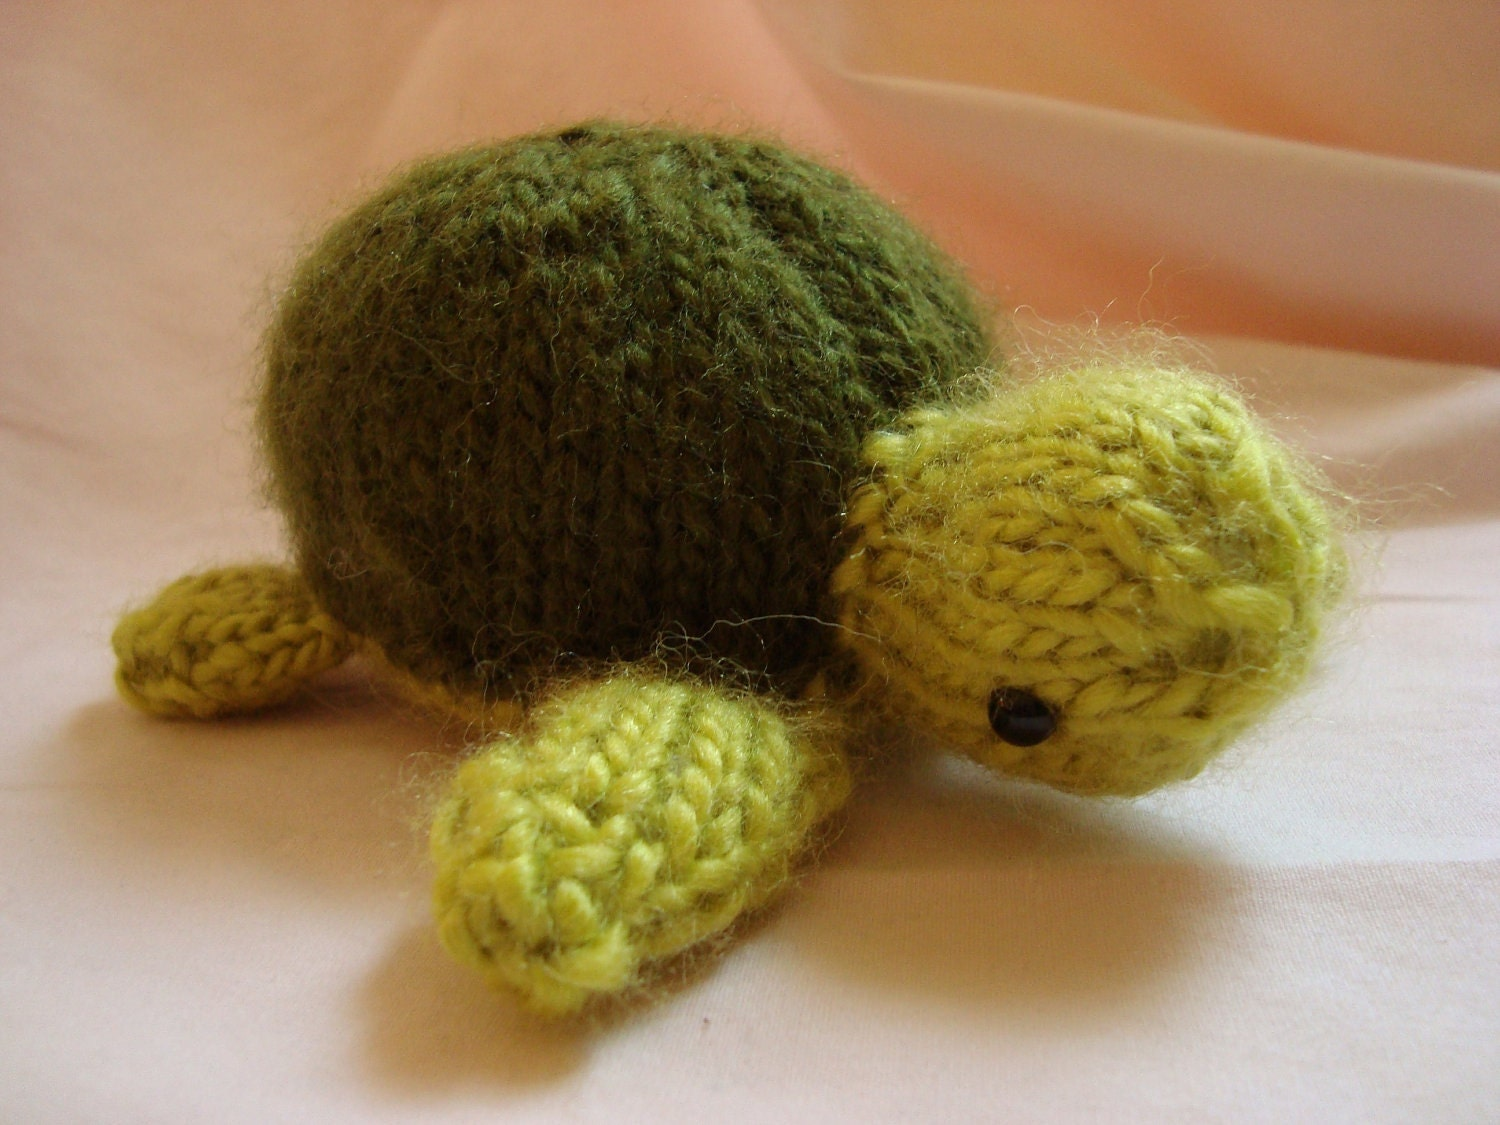 Knitting Patterns Turtle Toy : Knitted Sea Turtle Toy Stuffed Animal FREE SHIPPIN in the